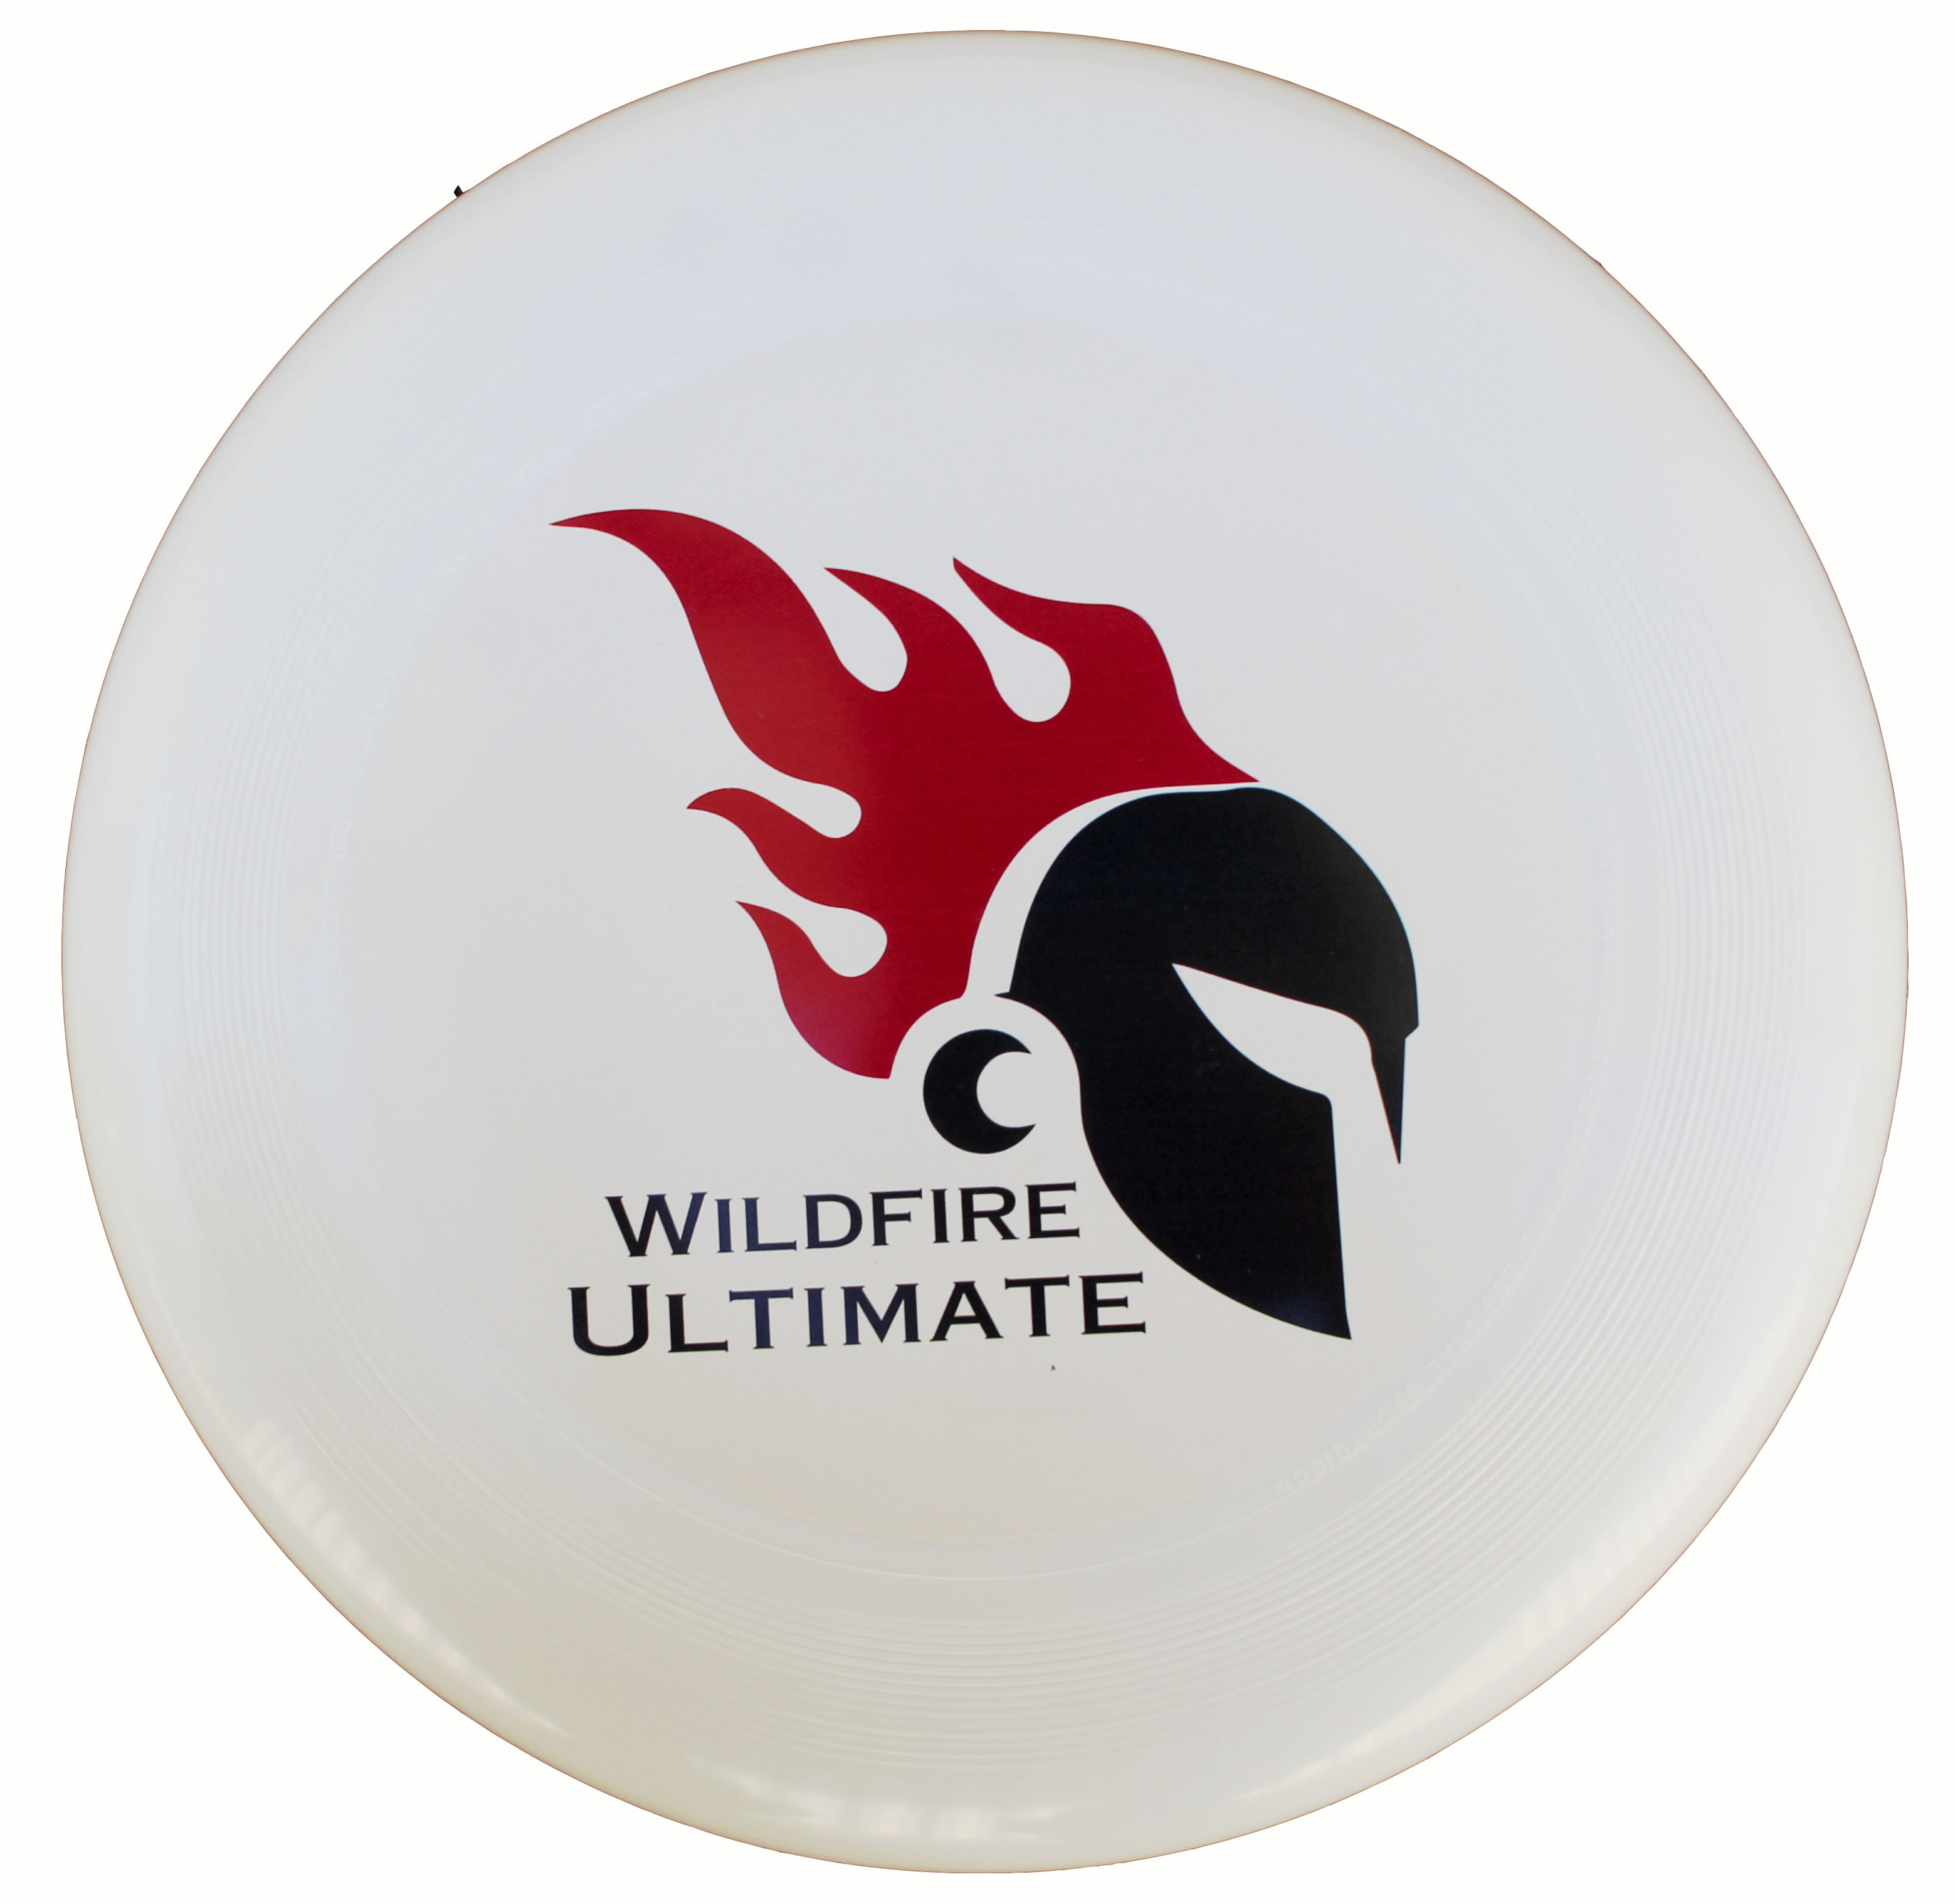 Image for the Wildfire Ultimate Frisbee product